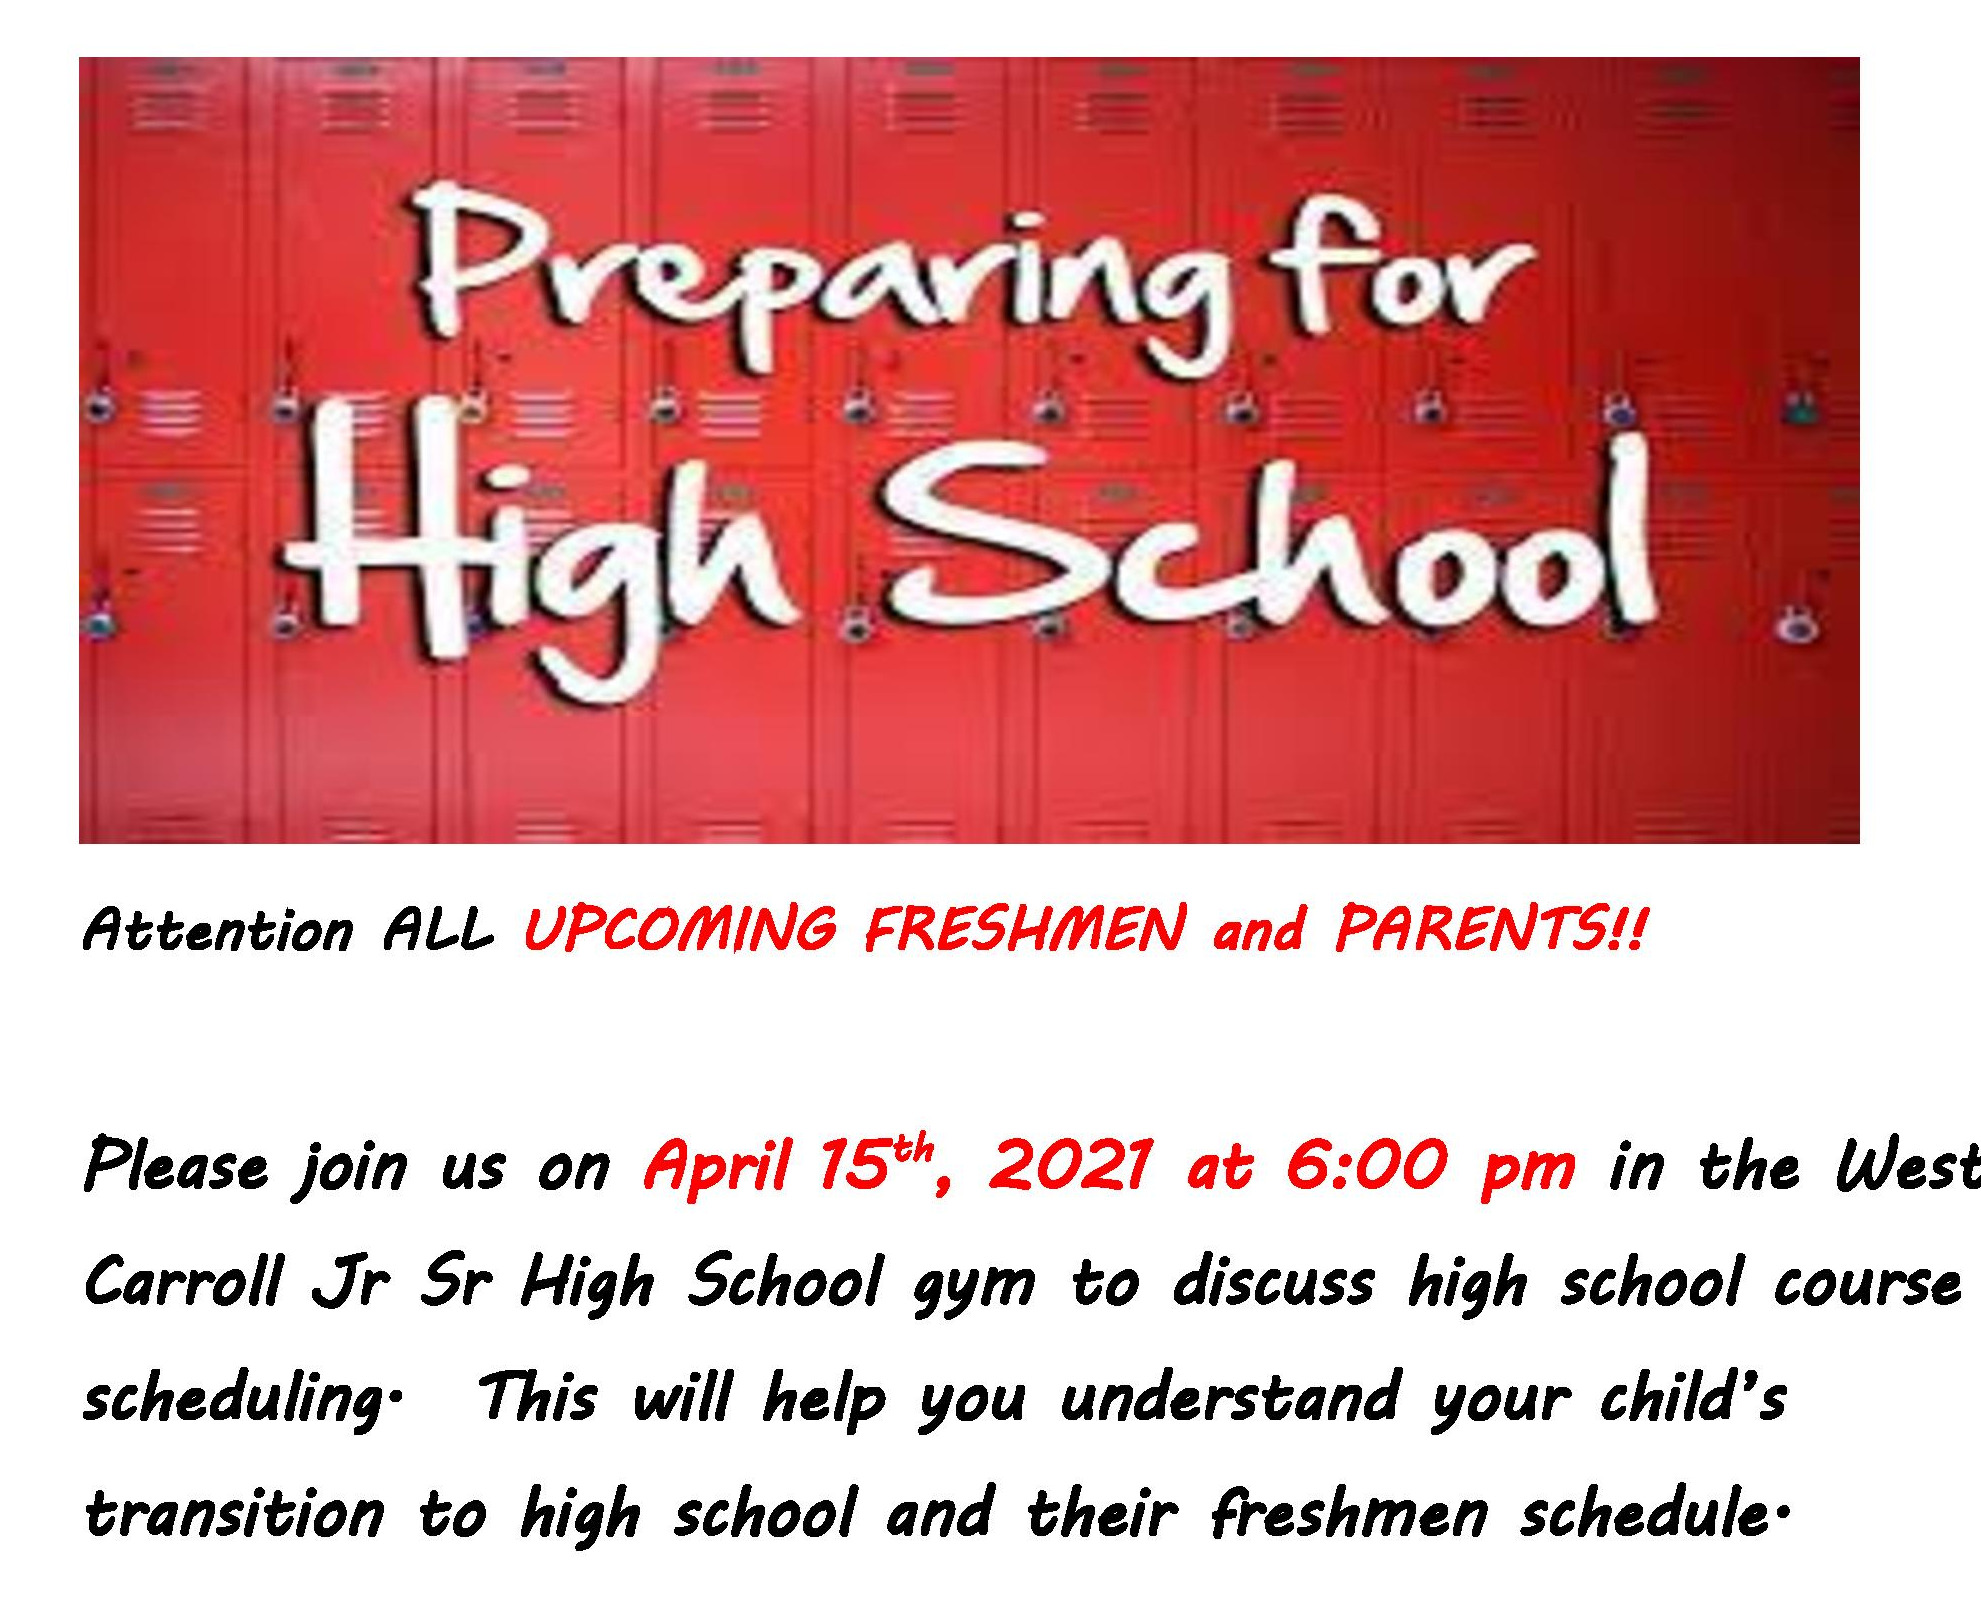 An announcement for 8th grade parent and student night